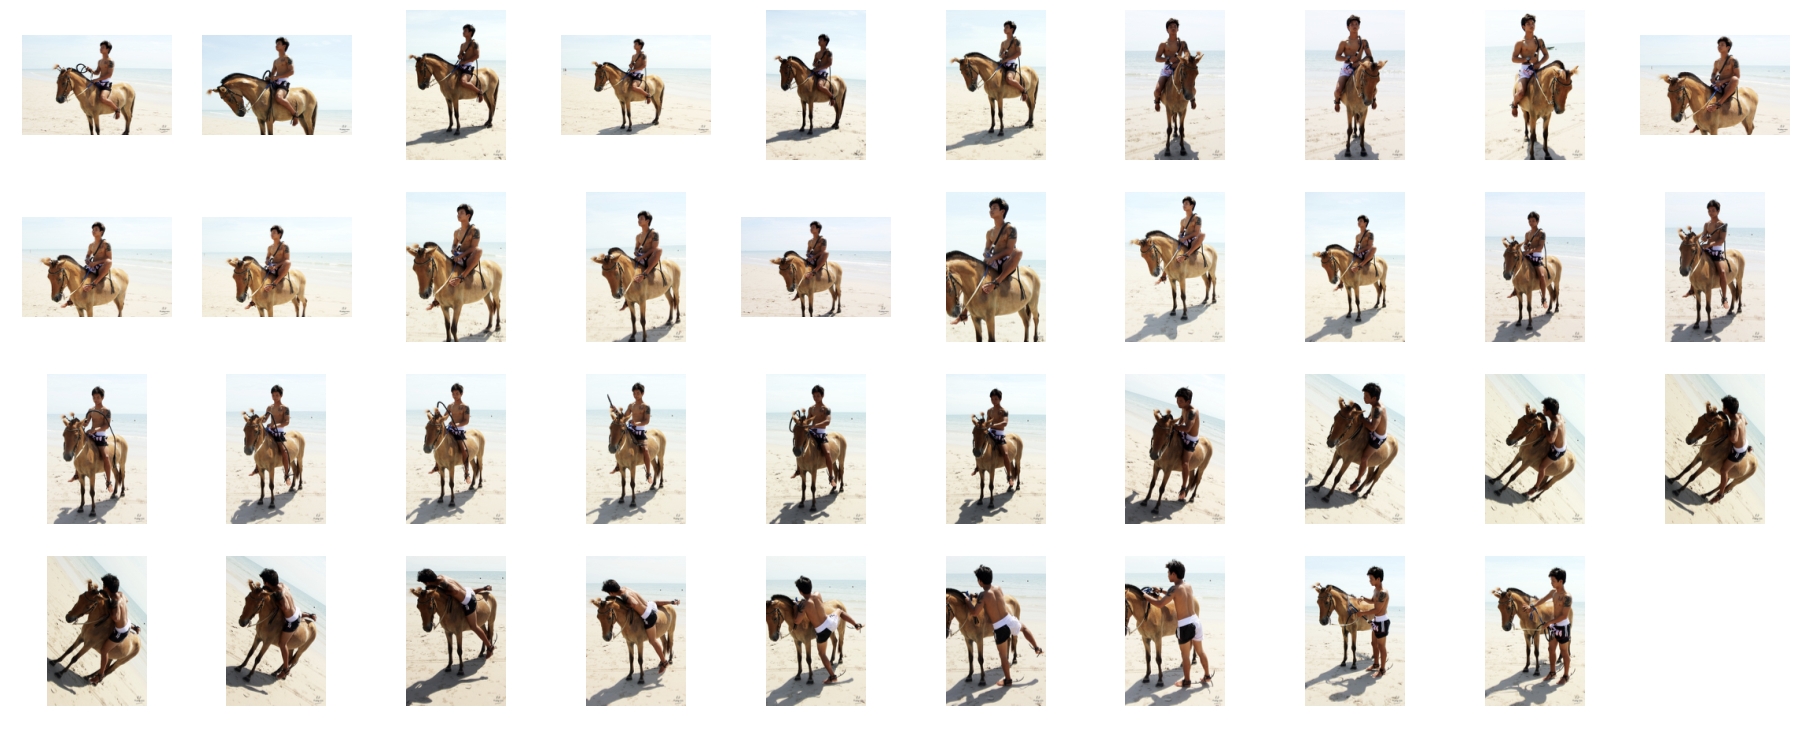 Savings package: David Entire Season 3 (449 pictures in 11 galleries) - Riding.Vision